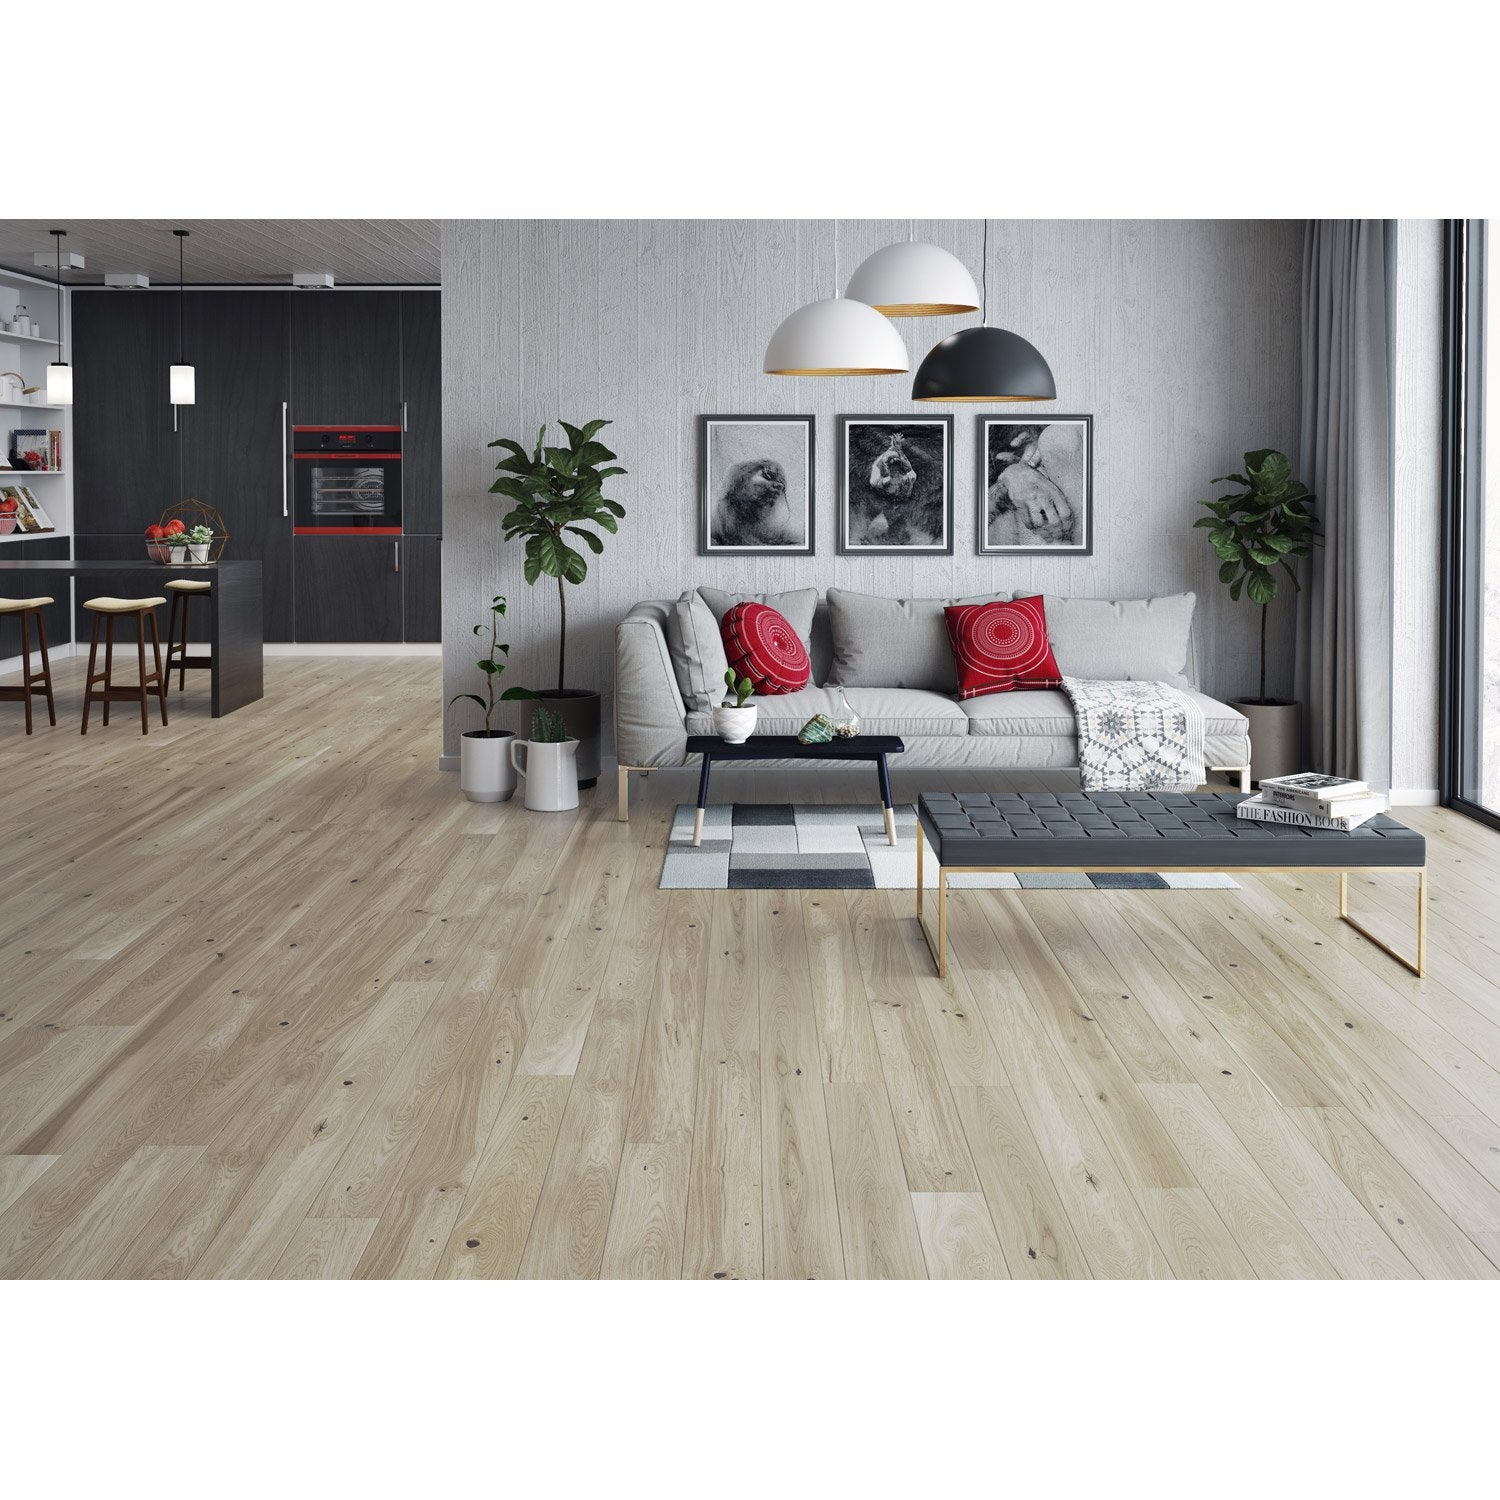 poser du parquet flottant avec leroy merlin brico depot. Black Bedroom Furniture Sets. Home Design Ideas